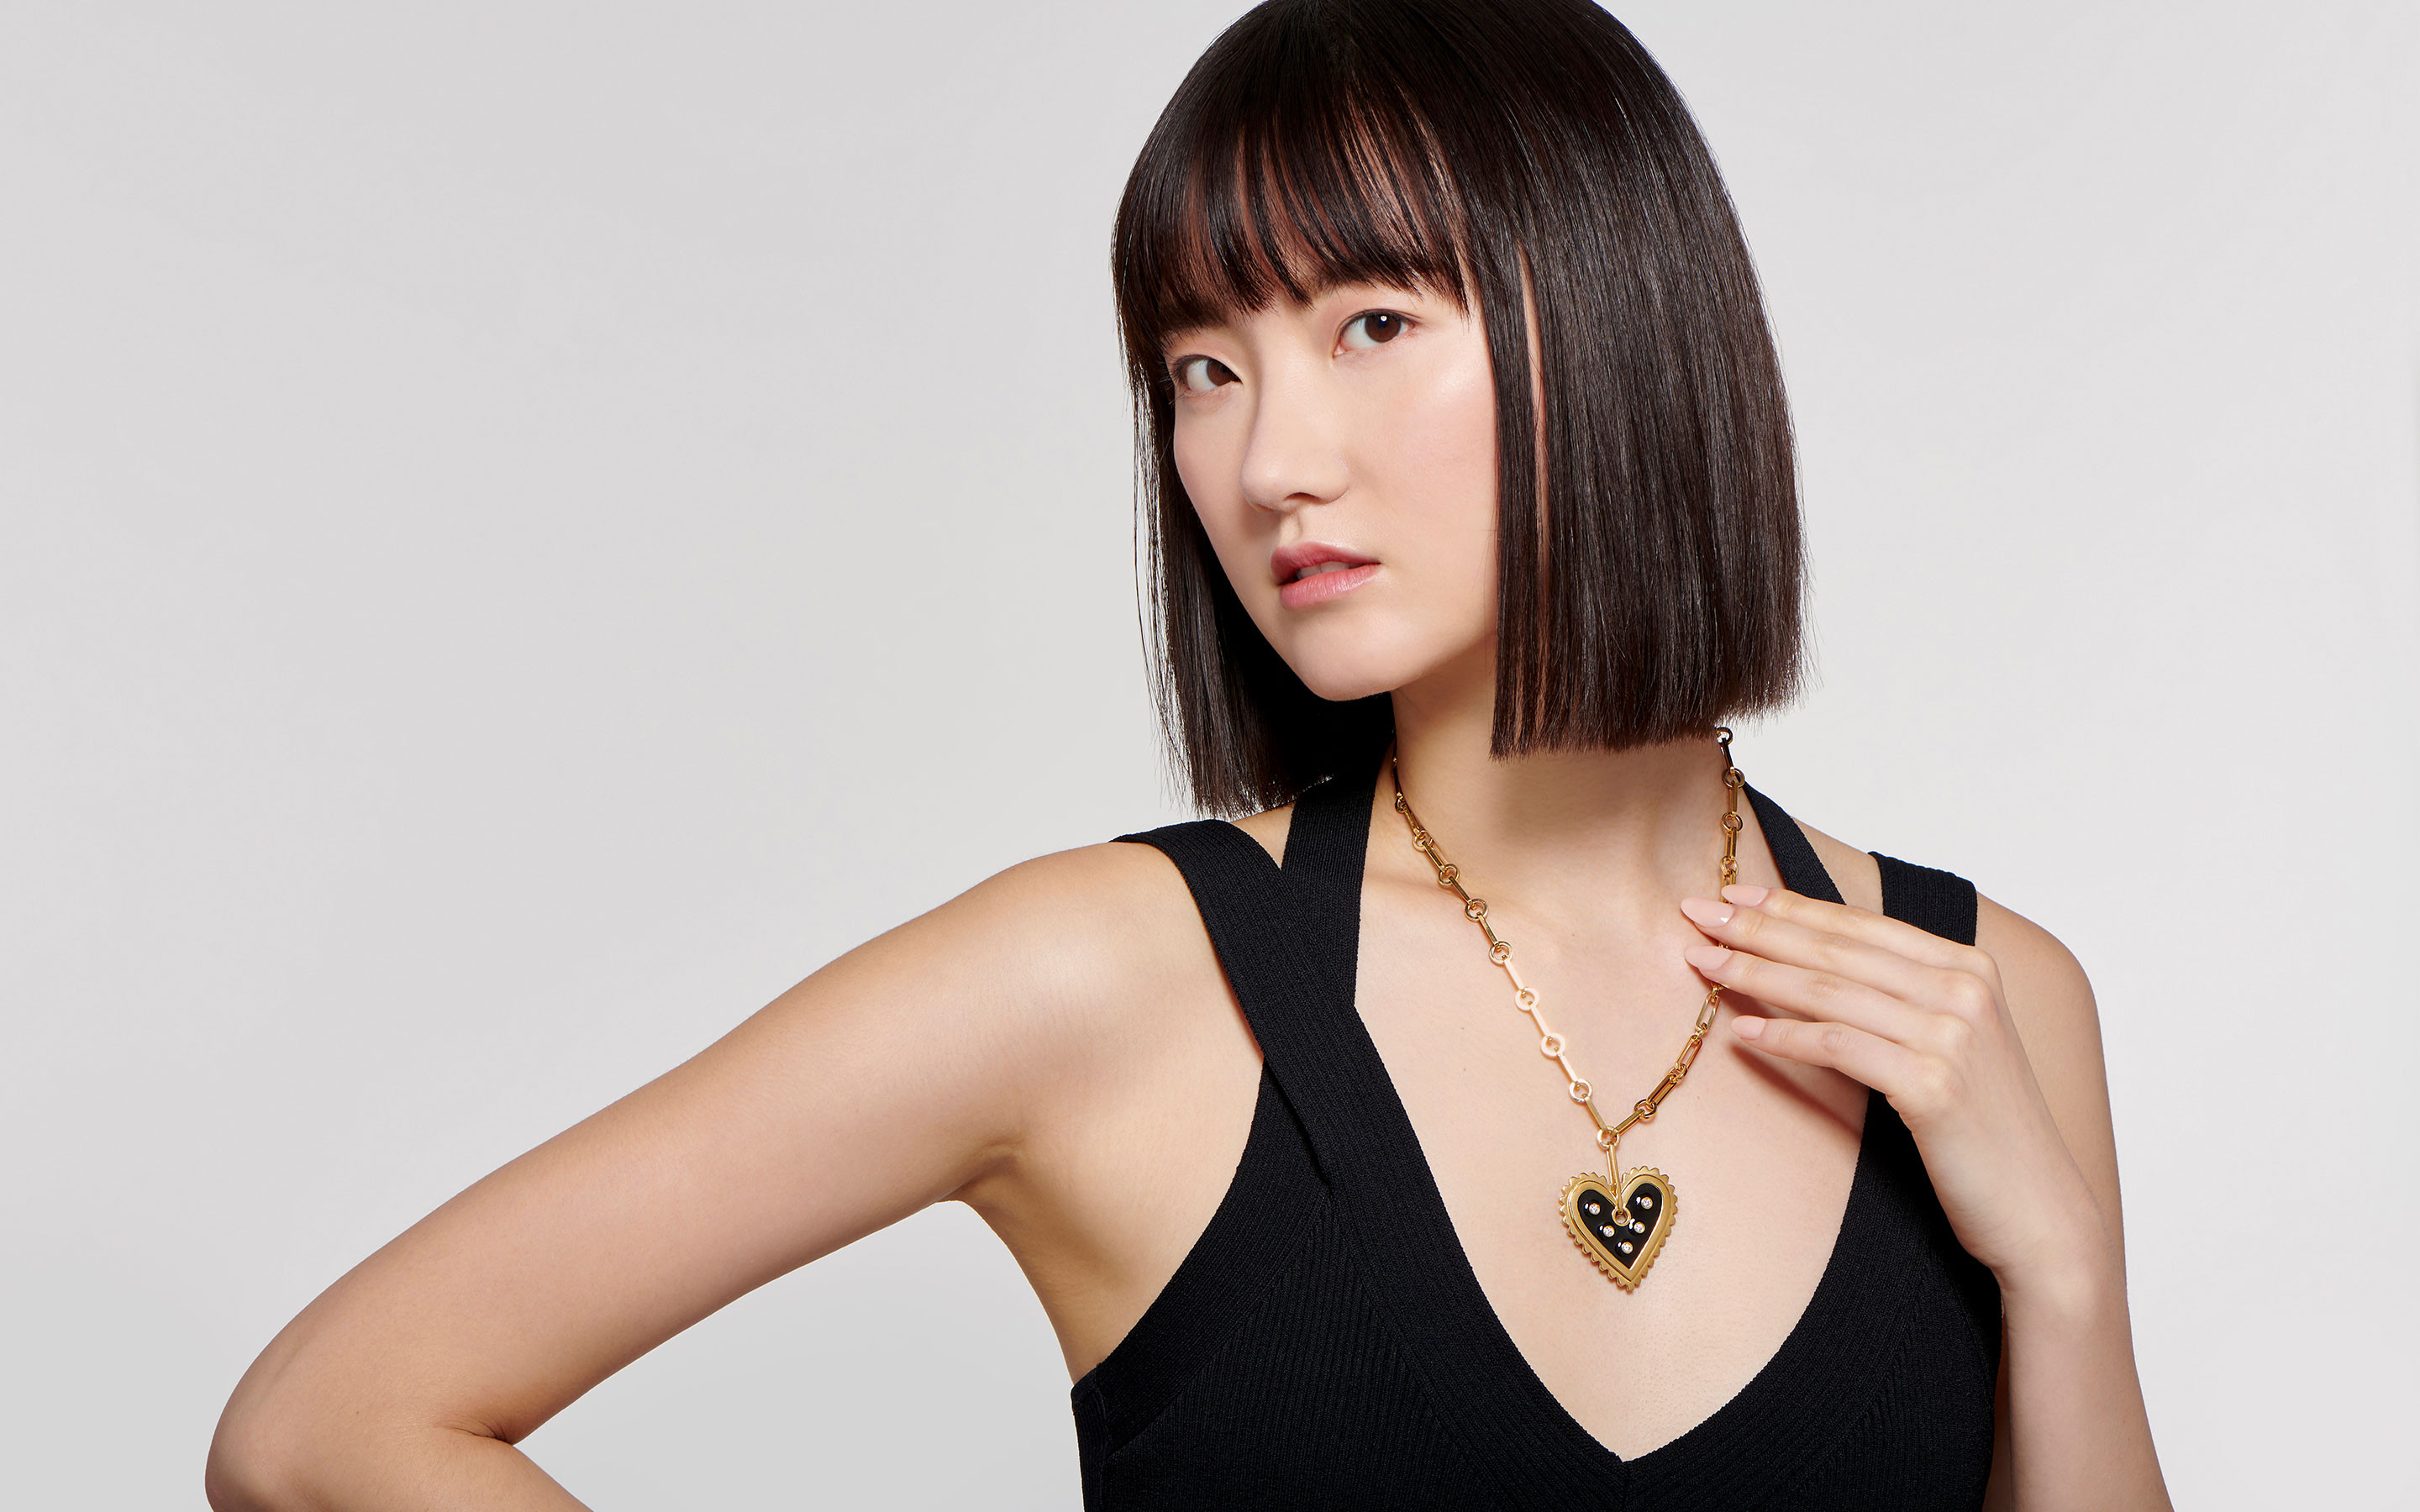 stylish East Asian woman showcasing 22 karat gold necklace with heart medallion and diamonds